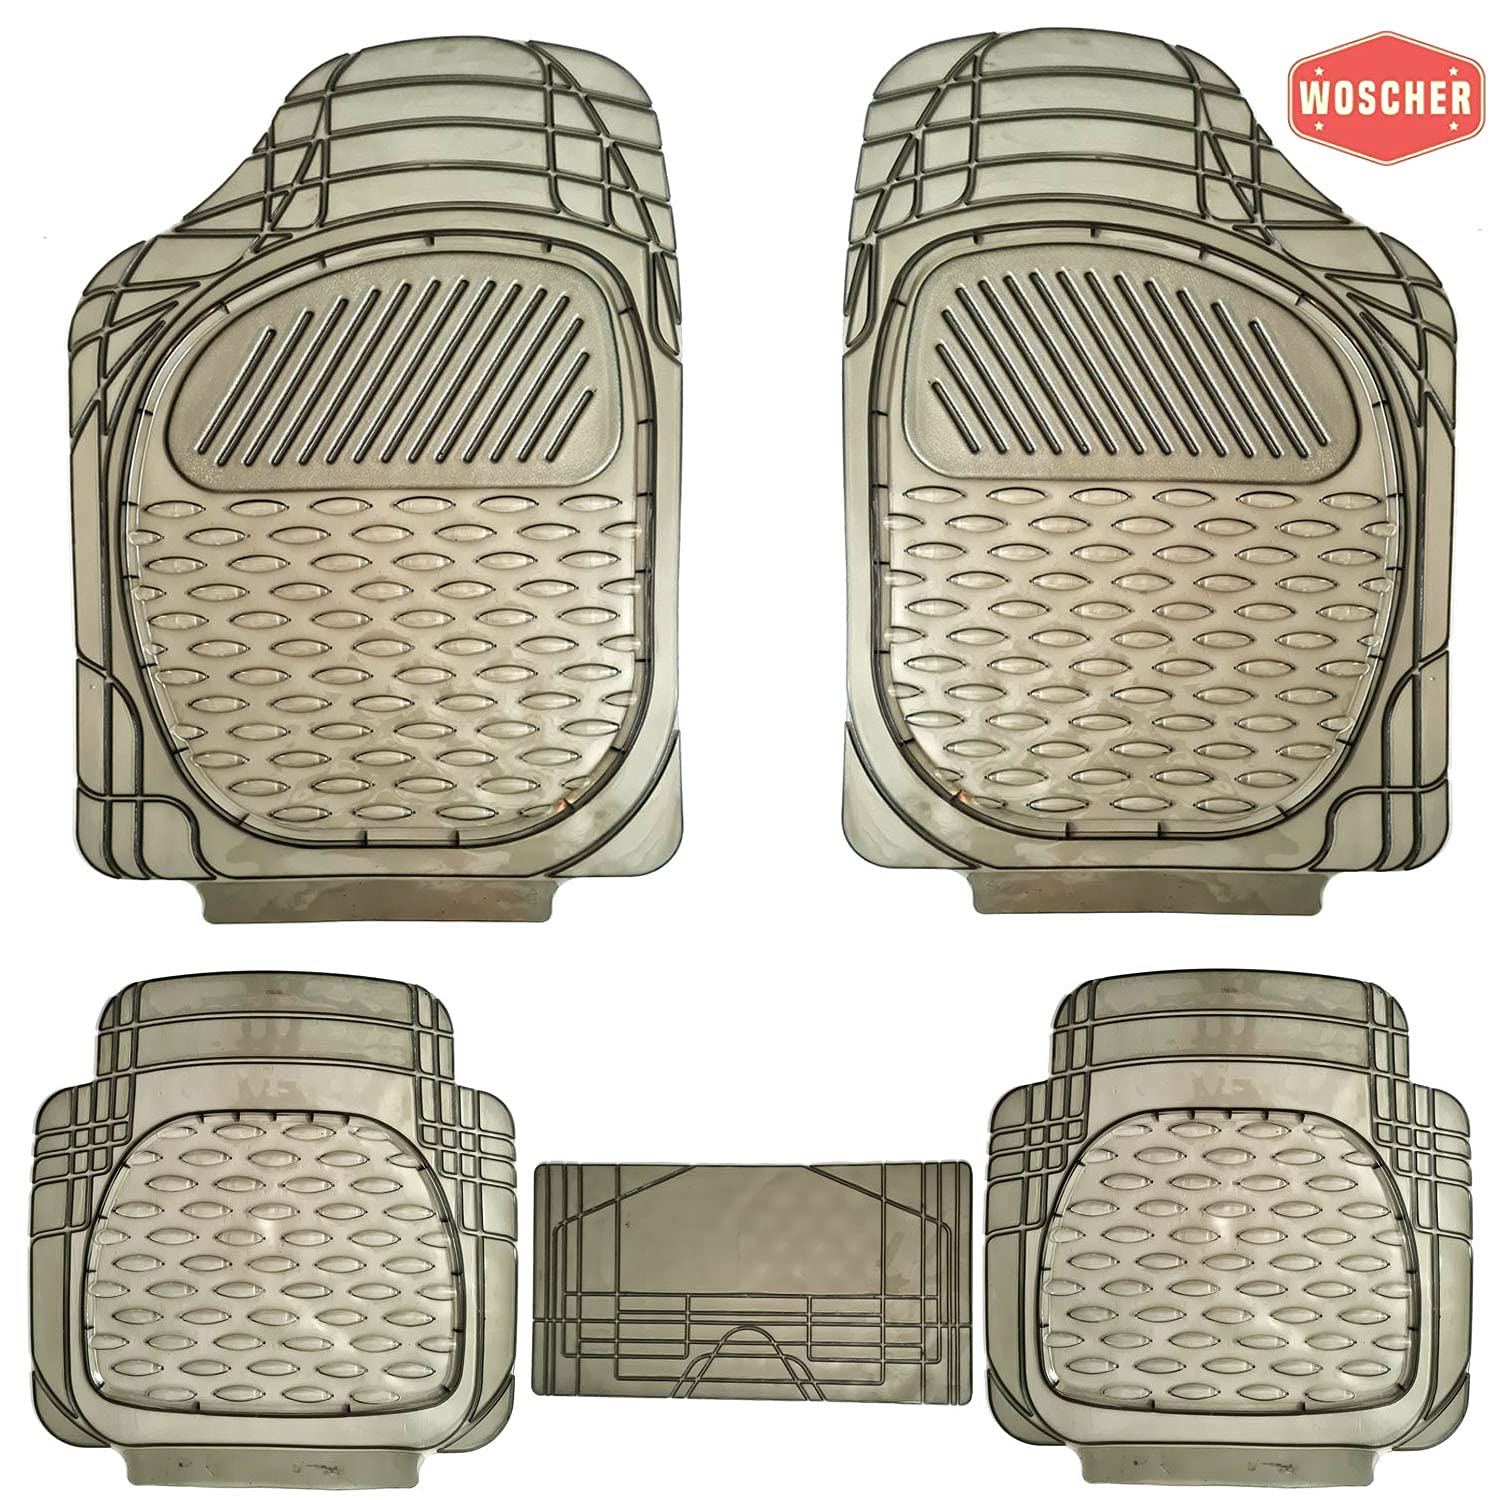 woscher-6255-felxtough-all-season-rubber-floor-car-mat-for-car-suv-universal-self-cut-to-perfectly-fit-smoke